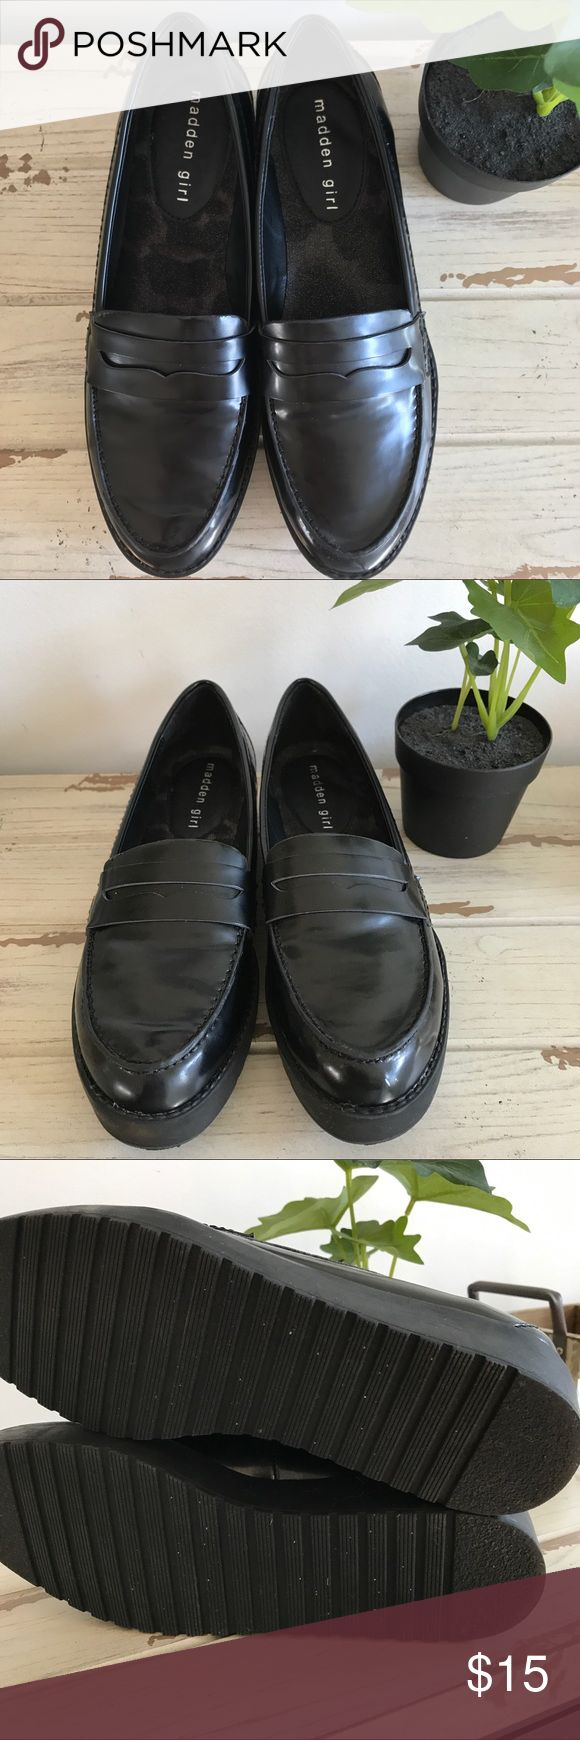 Madden Girl loafers black Madden girl loafers black / worn once / great condition/ Madden Girl Shoes Flats & Loafers